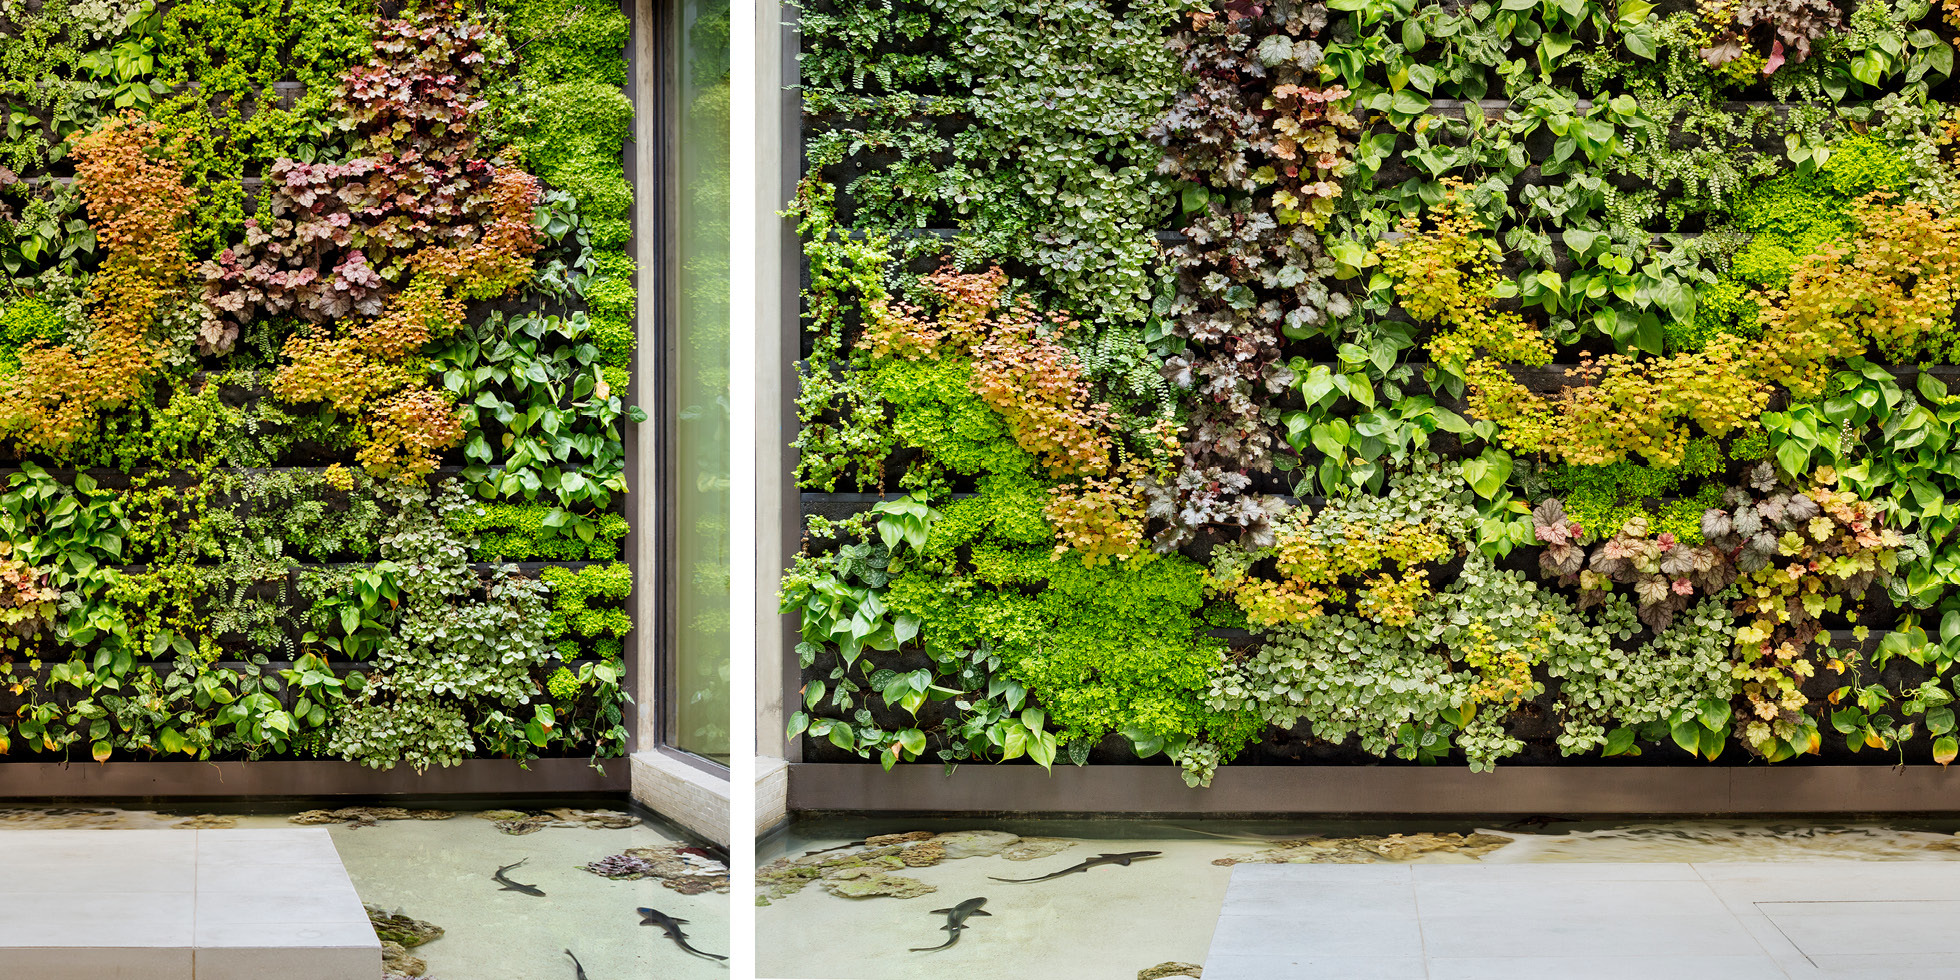 Beverly Hills Residence Living Wall by Habitat Horticulture - View 2